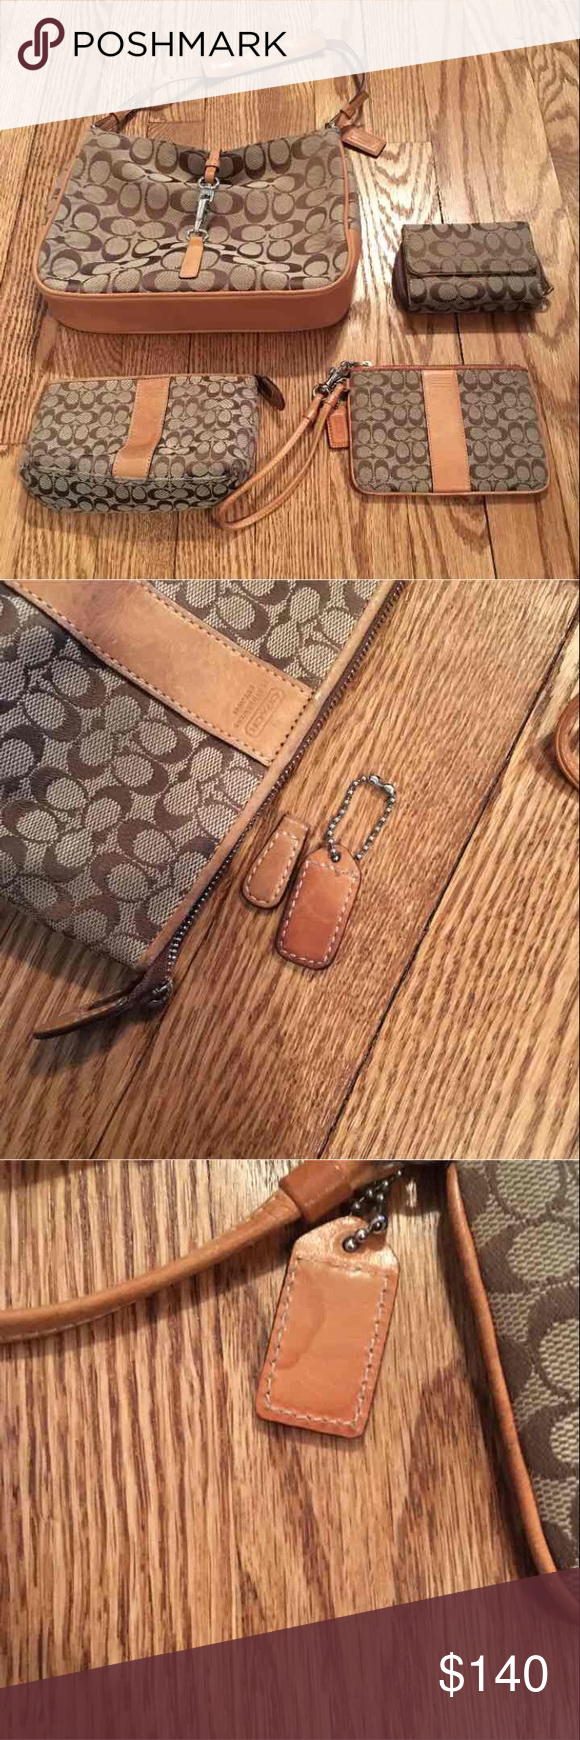 Coach 4 piece  bundle Wallet- lightly used  Purse -maybe used once  Wristlet- see pic has water mark on tab otherwise brand new  Makeup case-missing pull tab see pic (I have the tab it's not attached) Coach Bags Shoulder Bags